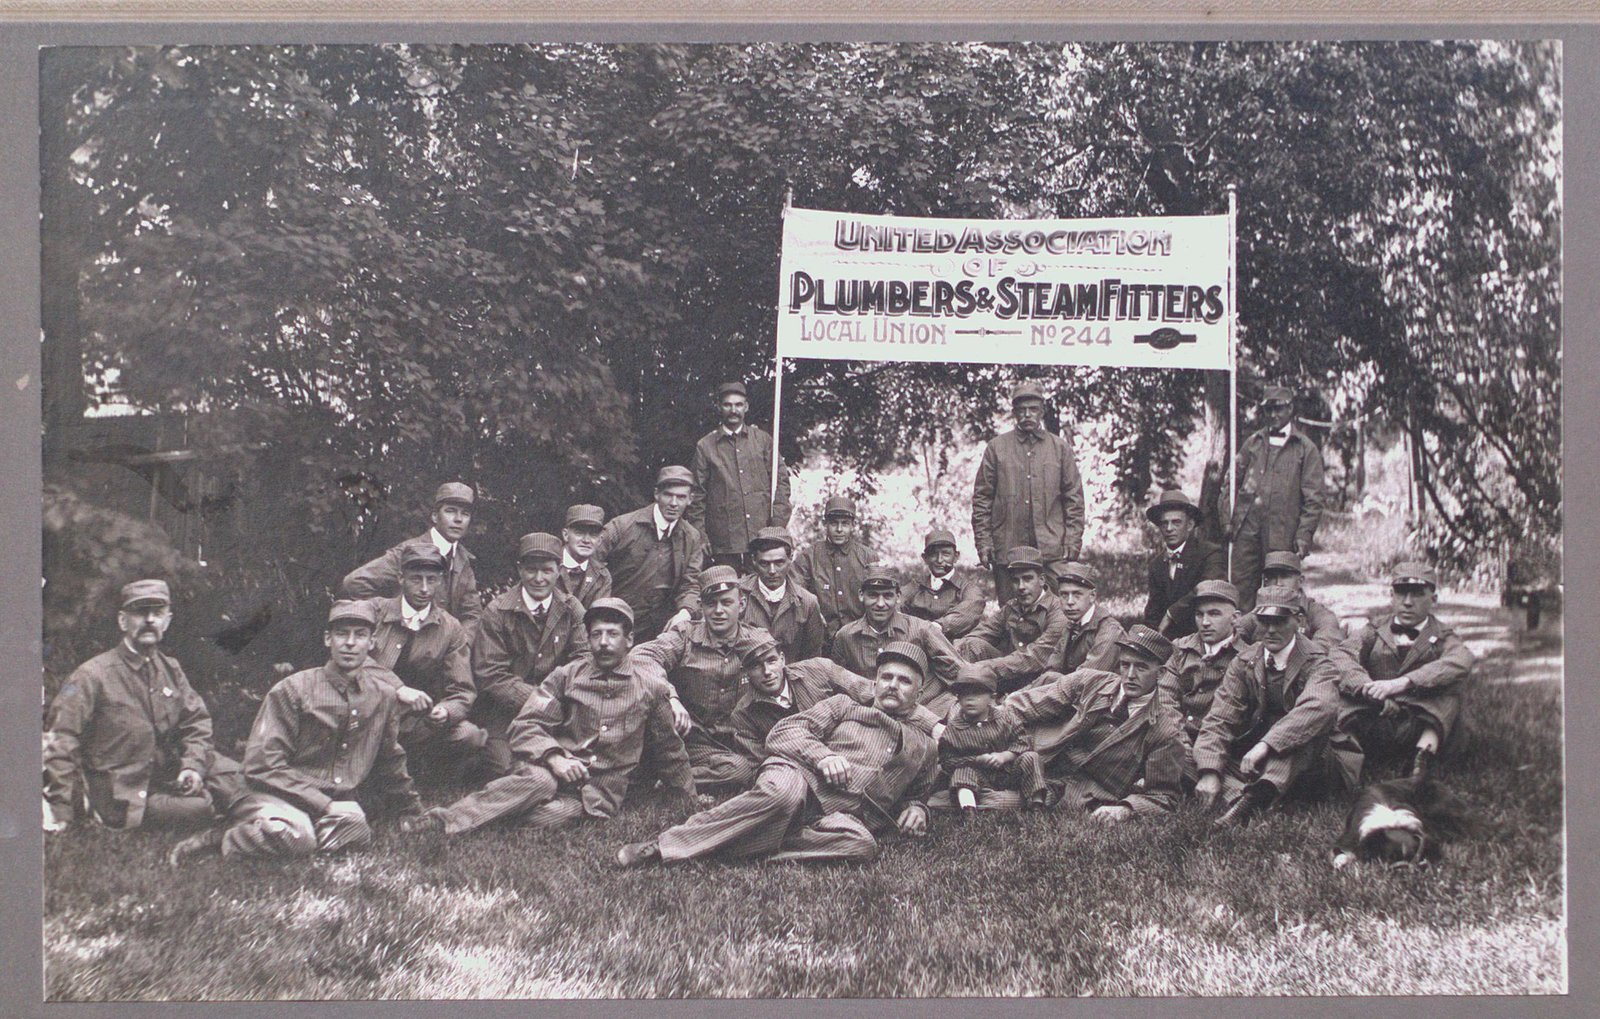 United Association of Plumbers & Steamfitters, Local Union #244